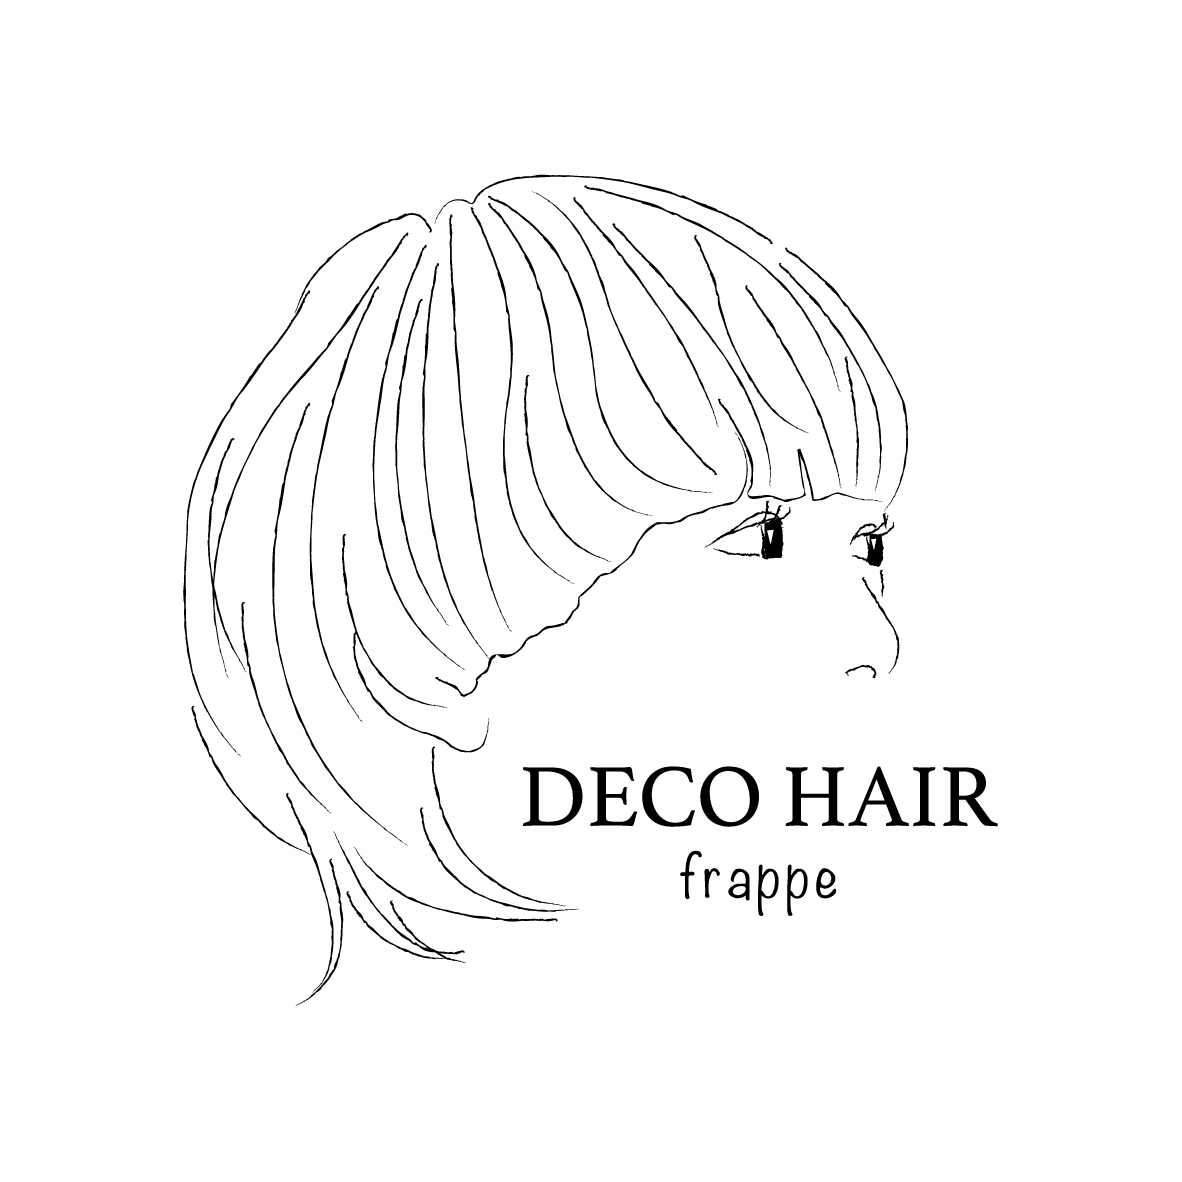 DECO HAIR frappe<br>【デコヘアー フラッペ】